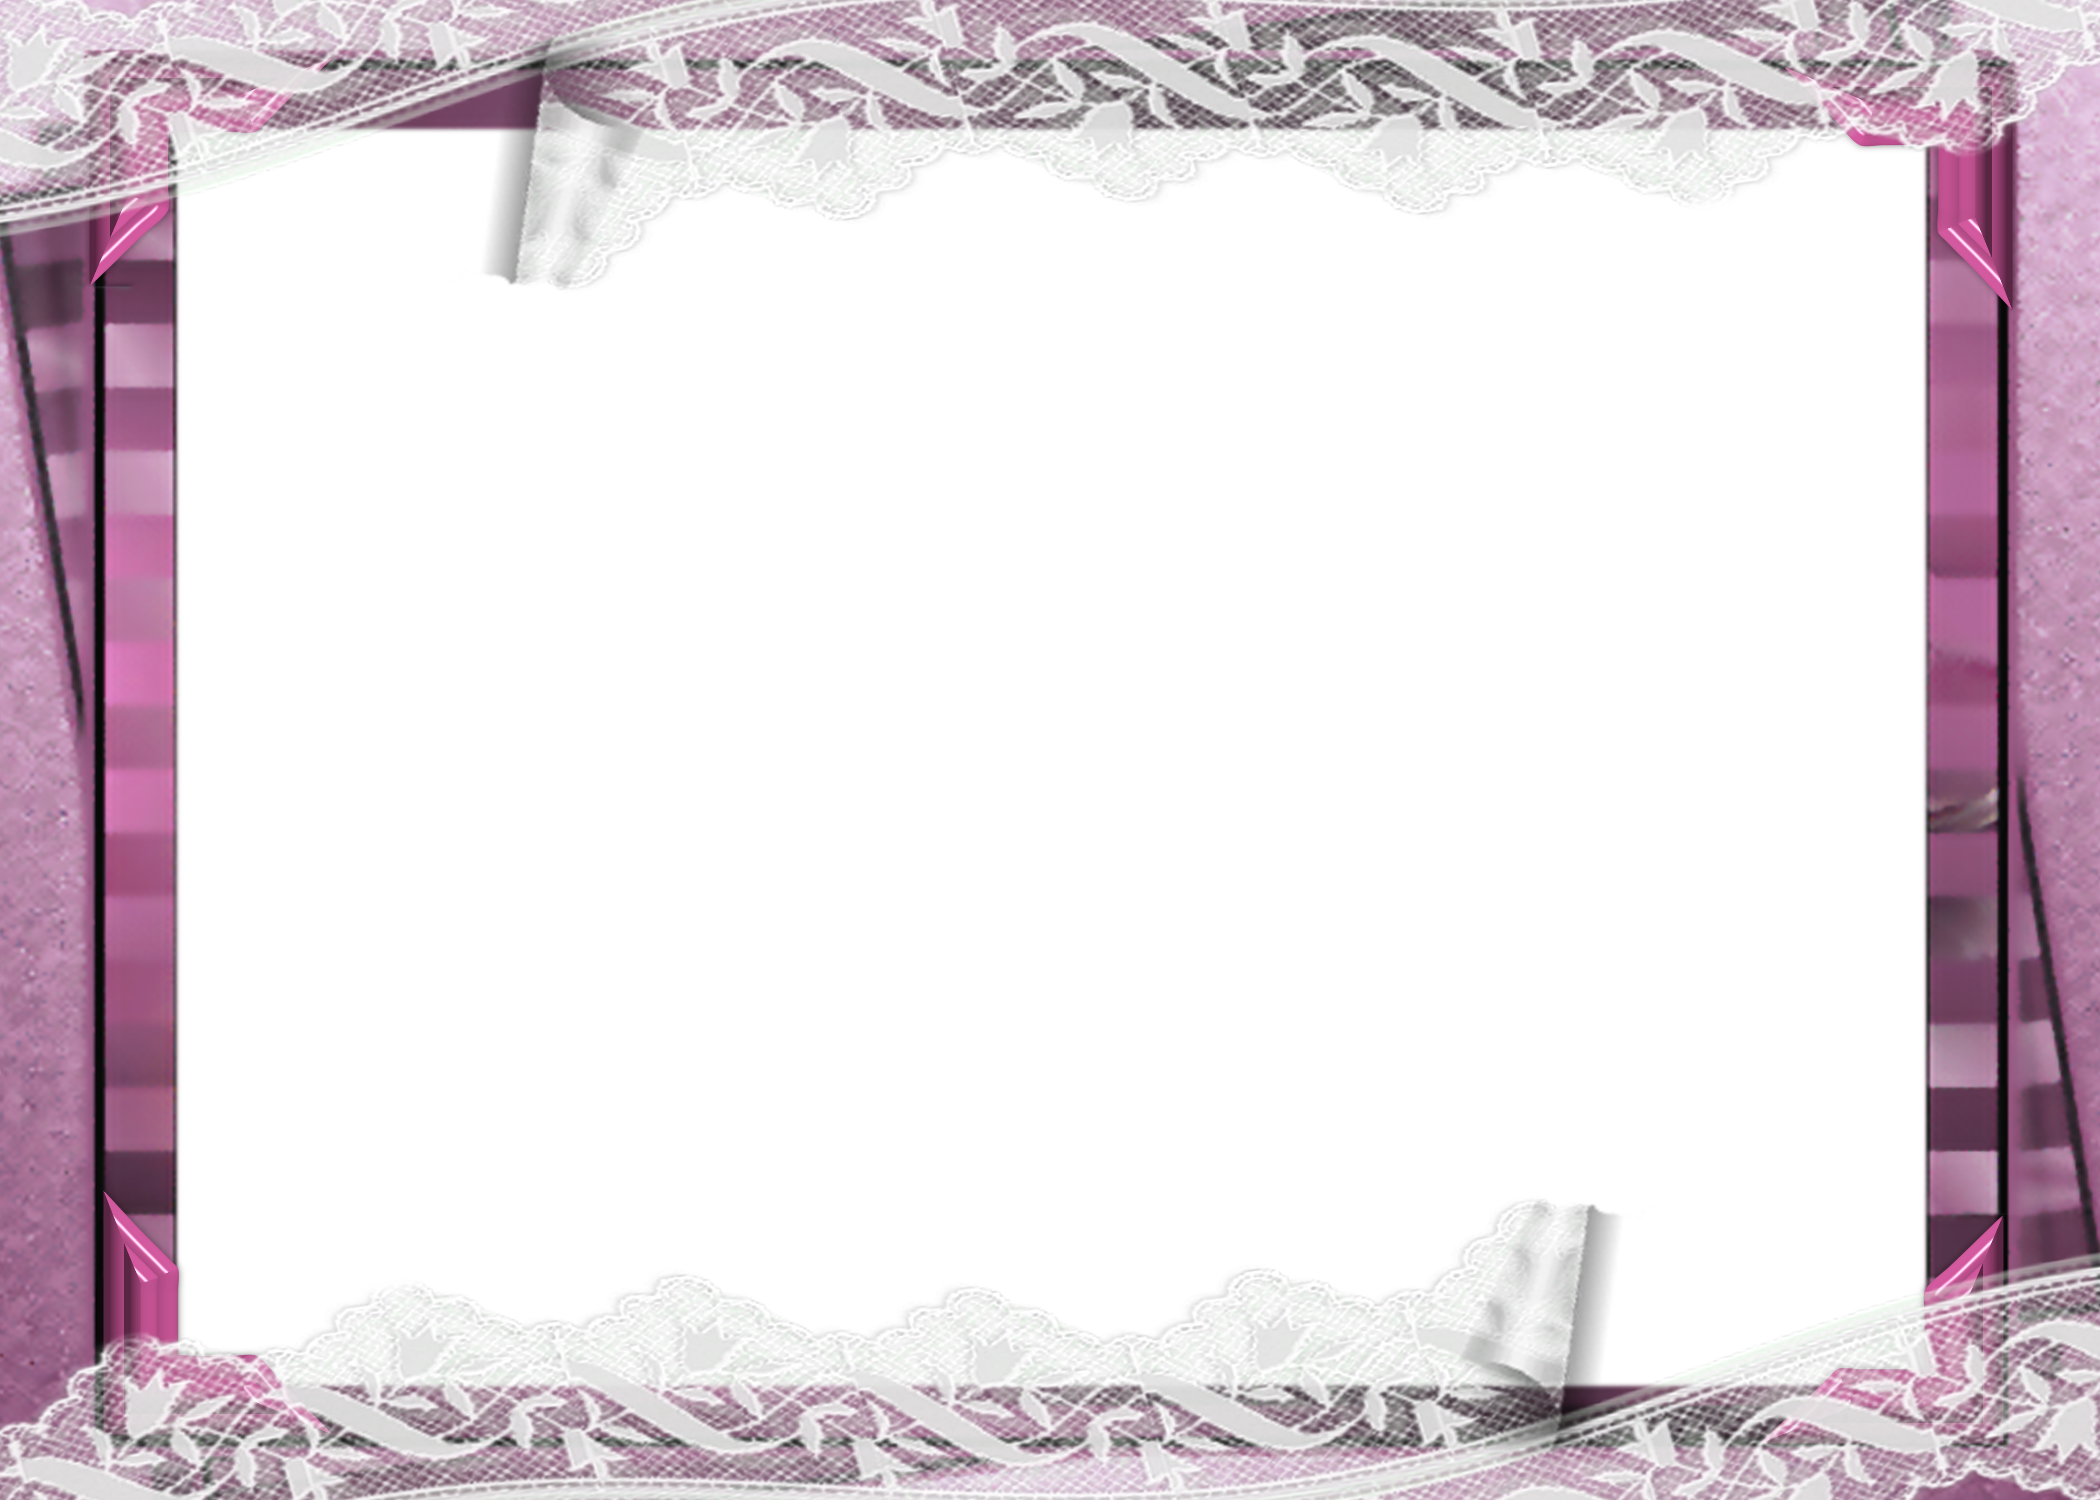 13 free psd frame templates images psd frame templates for Picture frame templates for photoshop